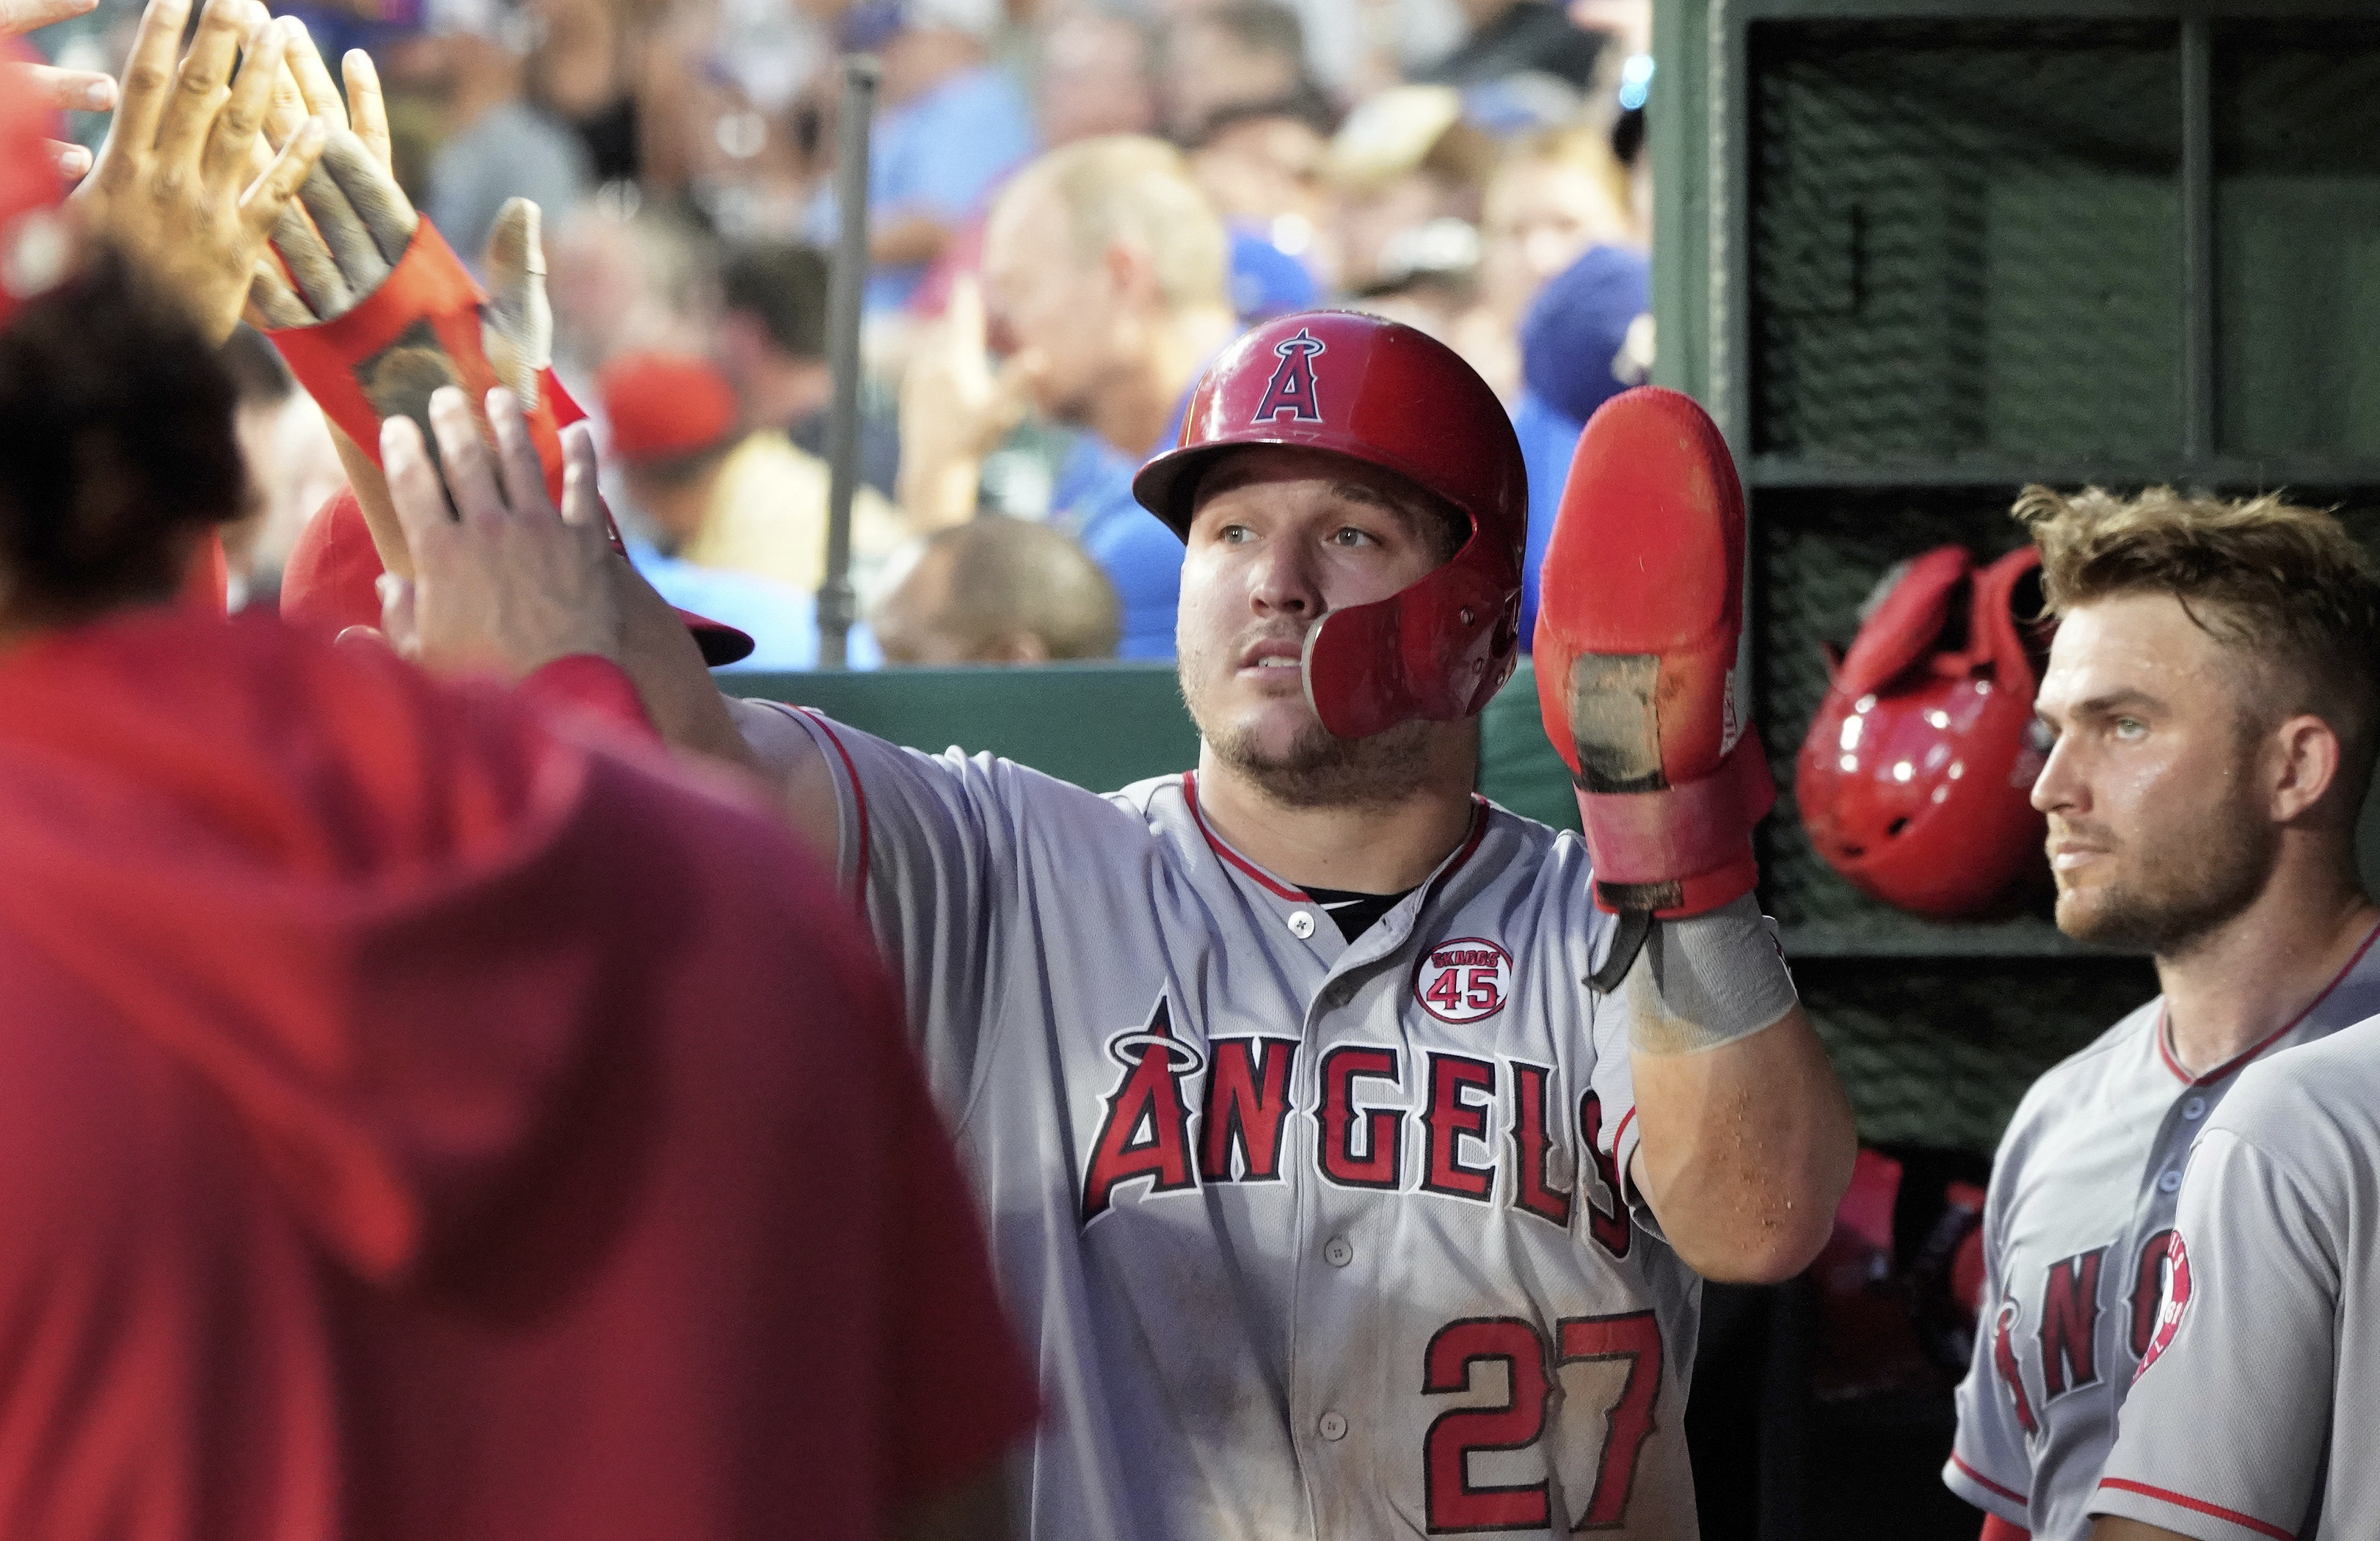 MLB awards: MVP, Cy Young, Rookie of the Year picks | Chris Cotillo (MLB Notebook)